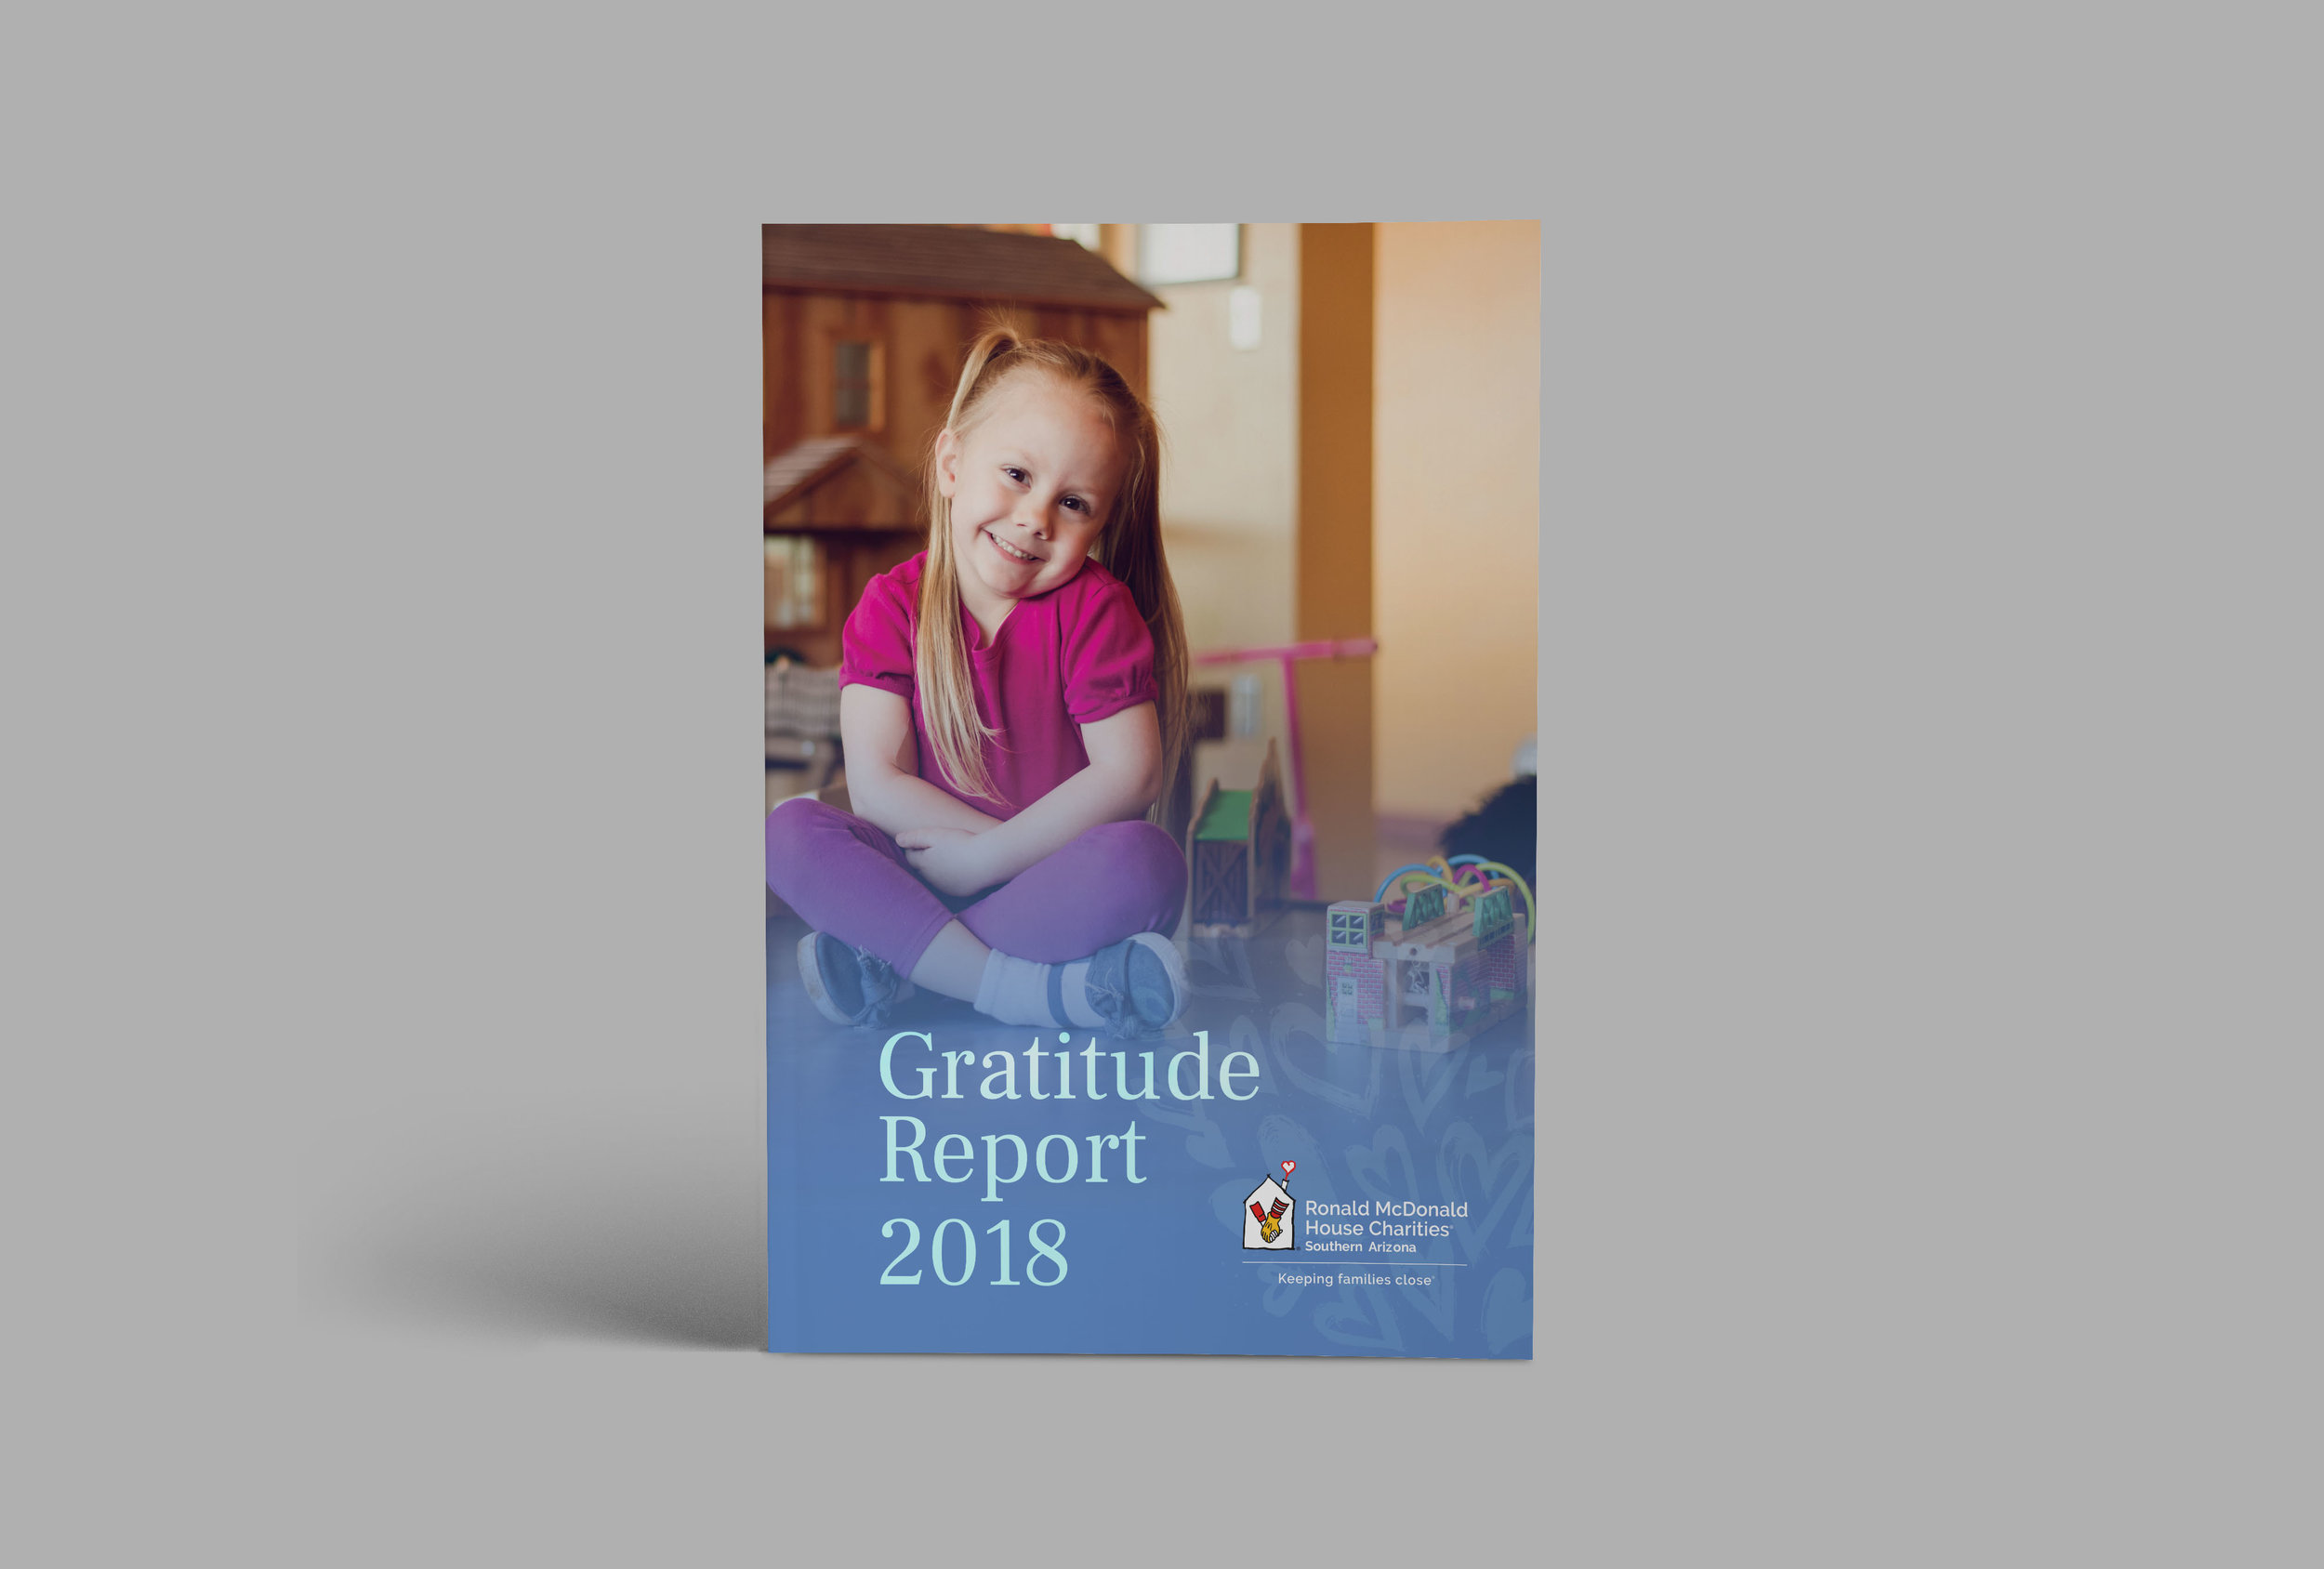 2018_Gratitude Report Mock_Cover.jpg